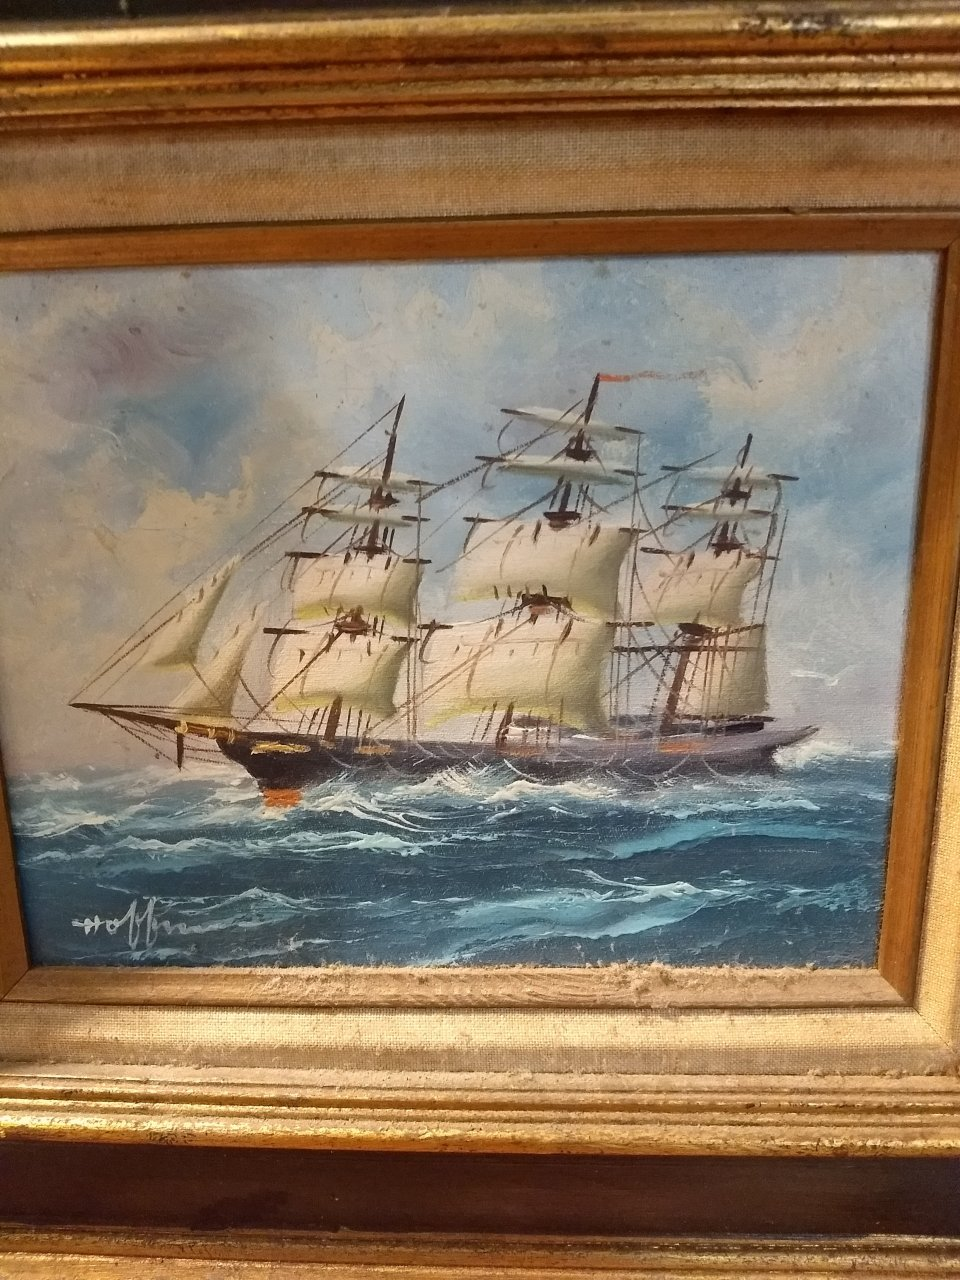 I Have An Oil Painting Of A Tall Ship Signed By Hoffman